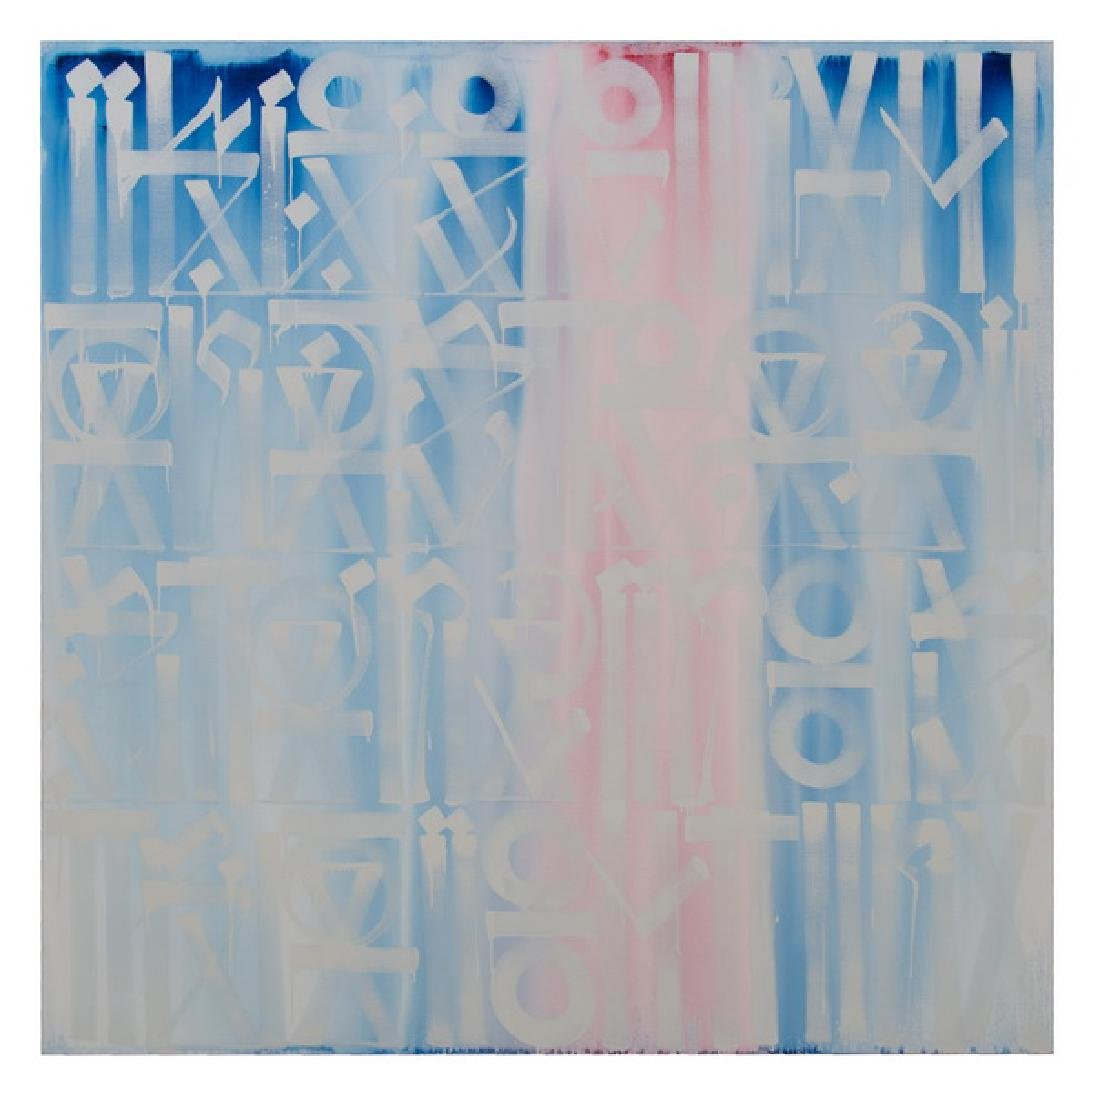 """RETNA (MARQUIS LEWIS): """"I KEEP MY HAND STEADY STACKING"""